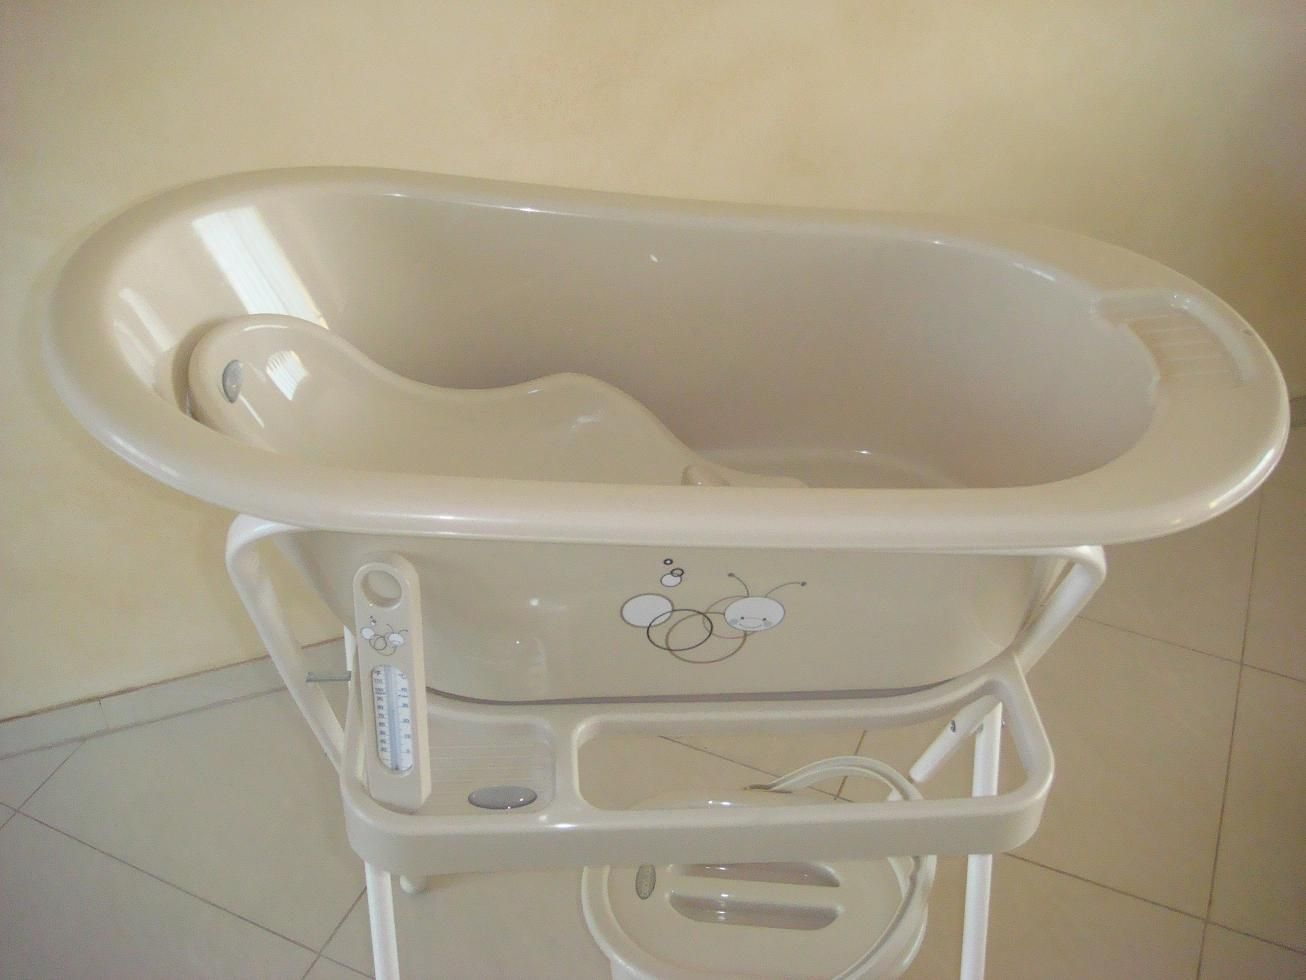 Baby Bath Tub With Stand By Bebe Jou Baby Bath Tub Baby Tub